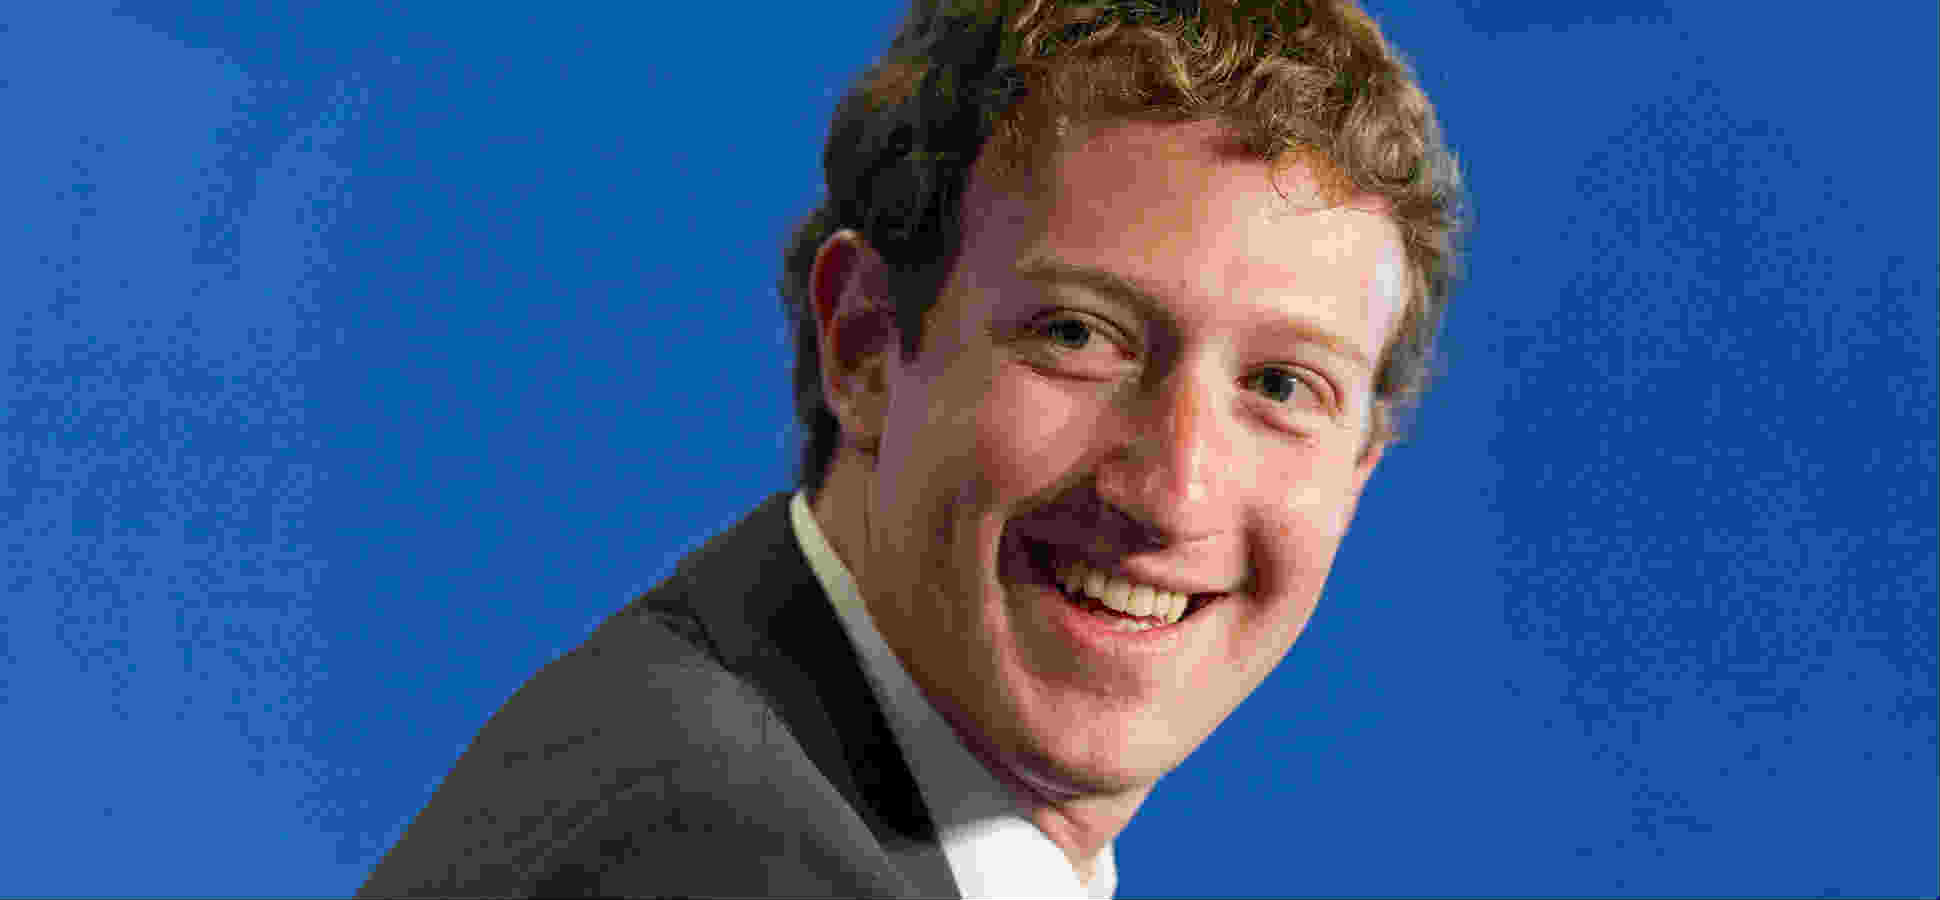 mark-zuckerberg-facebook-ceo_37502